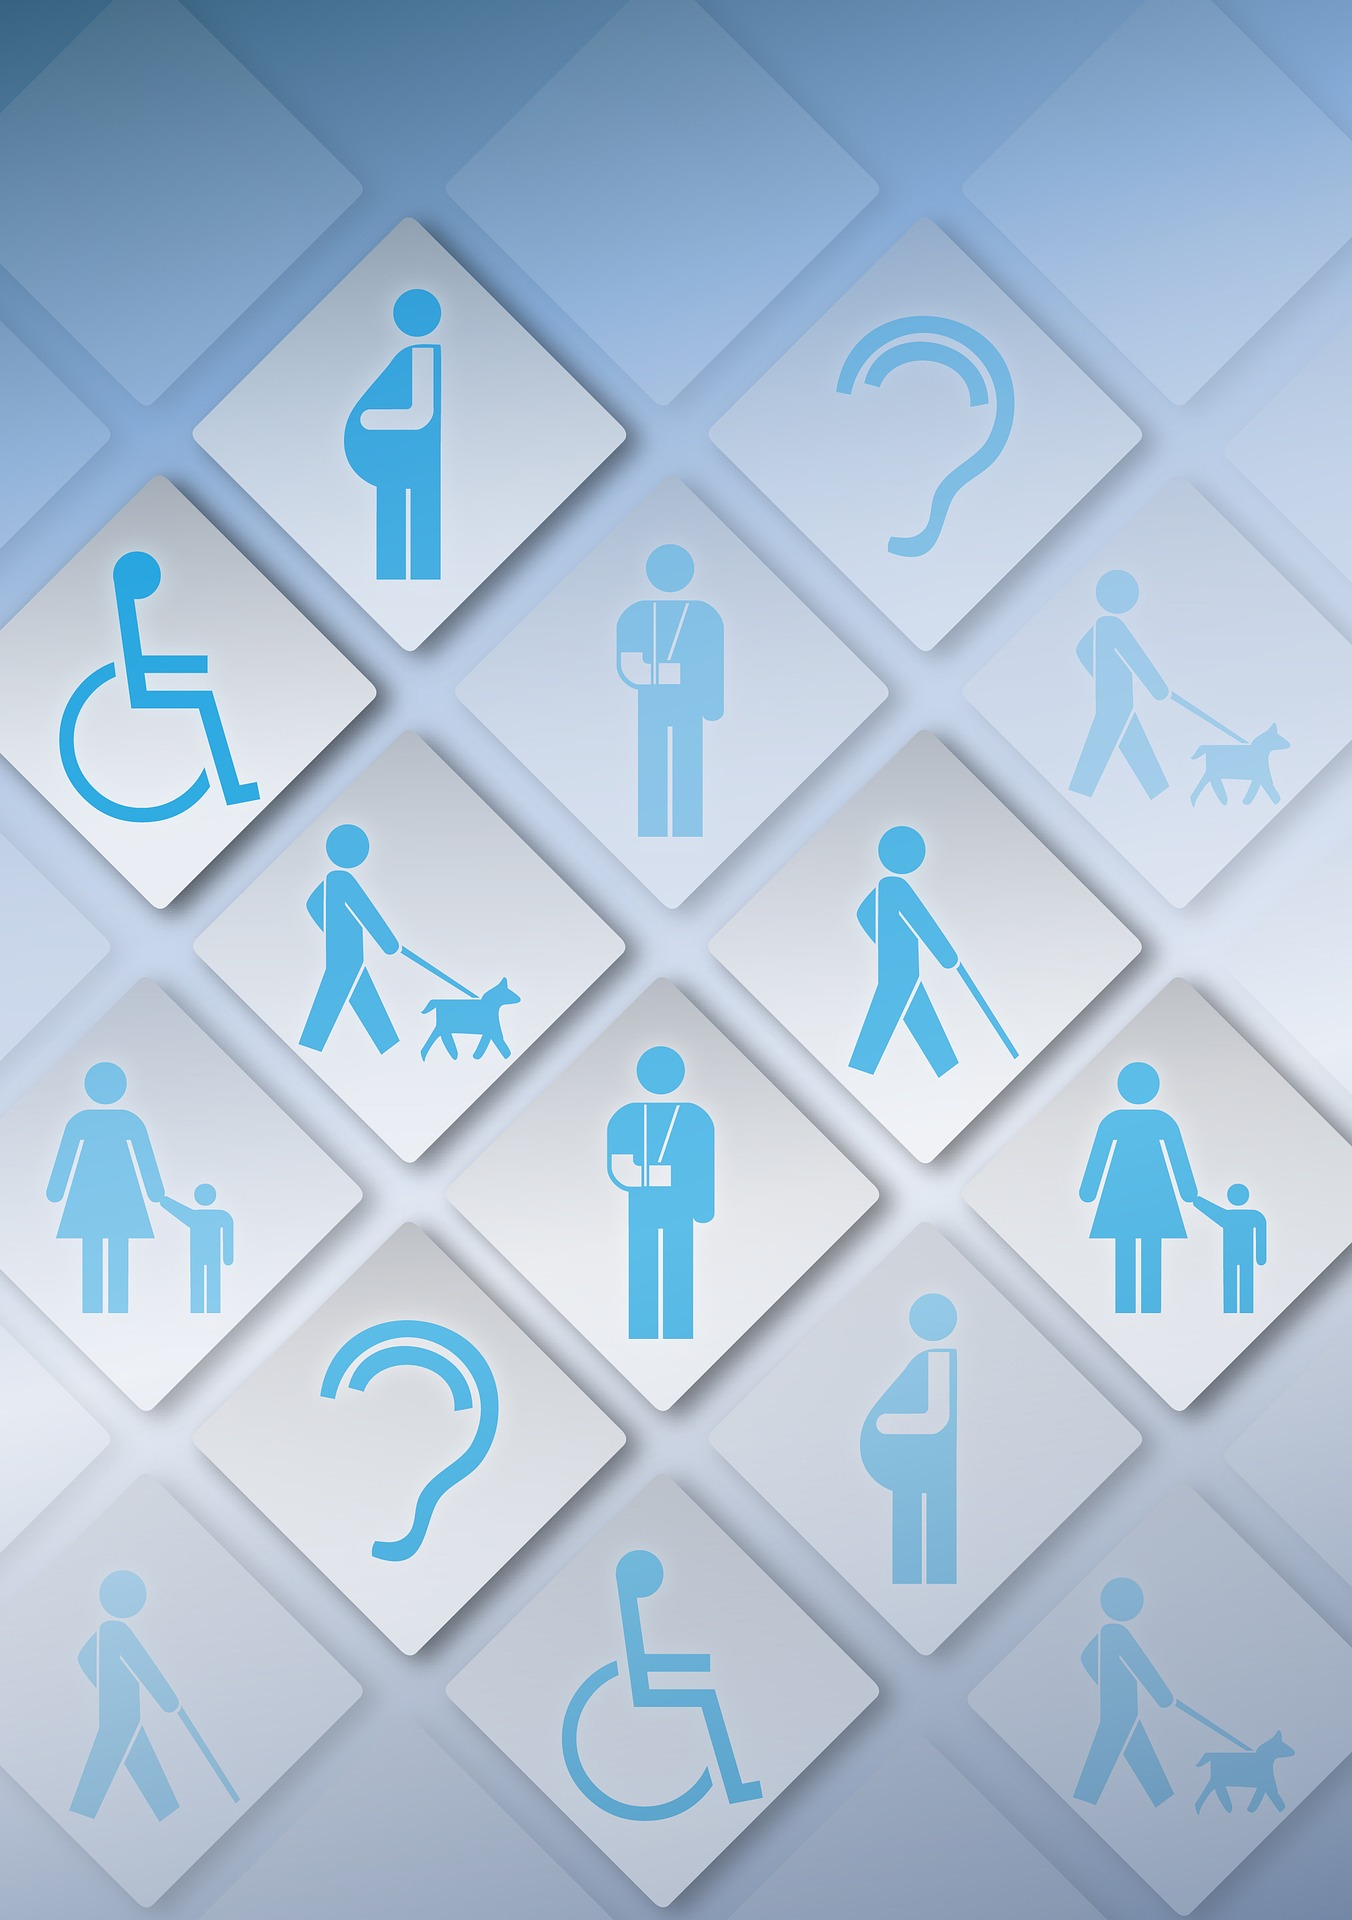 Several accessibility 'logos'; wheelchair user, assistance dog and user, an ear, walking stick user, someone with bandaged arm